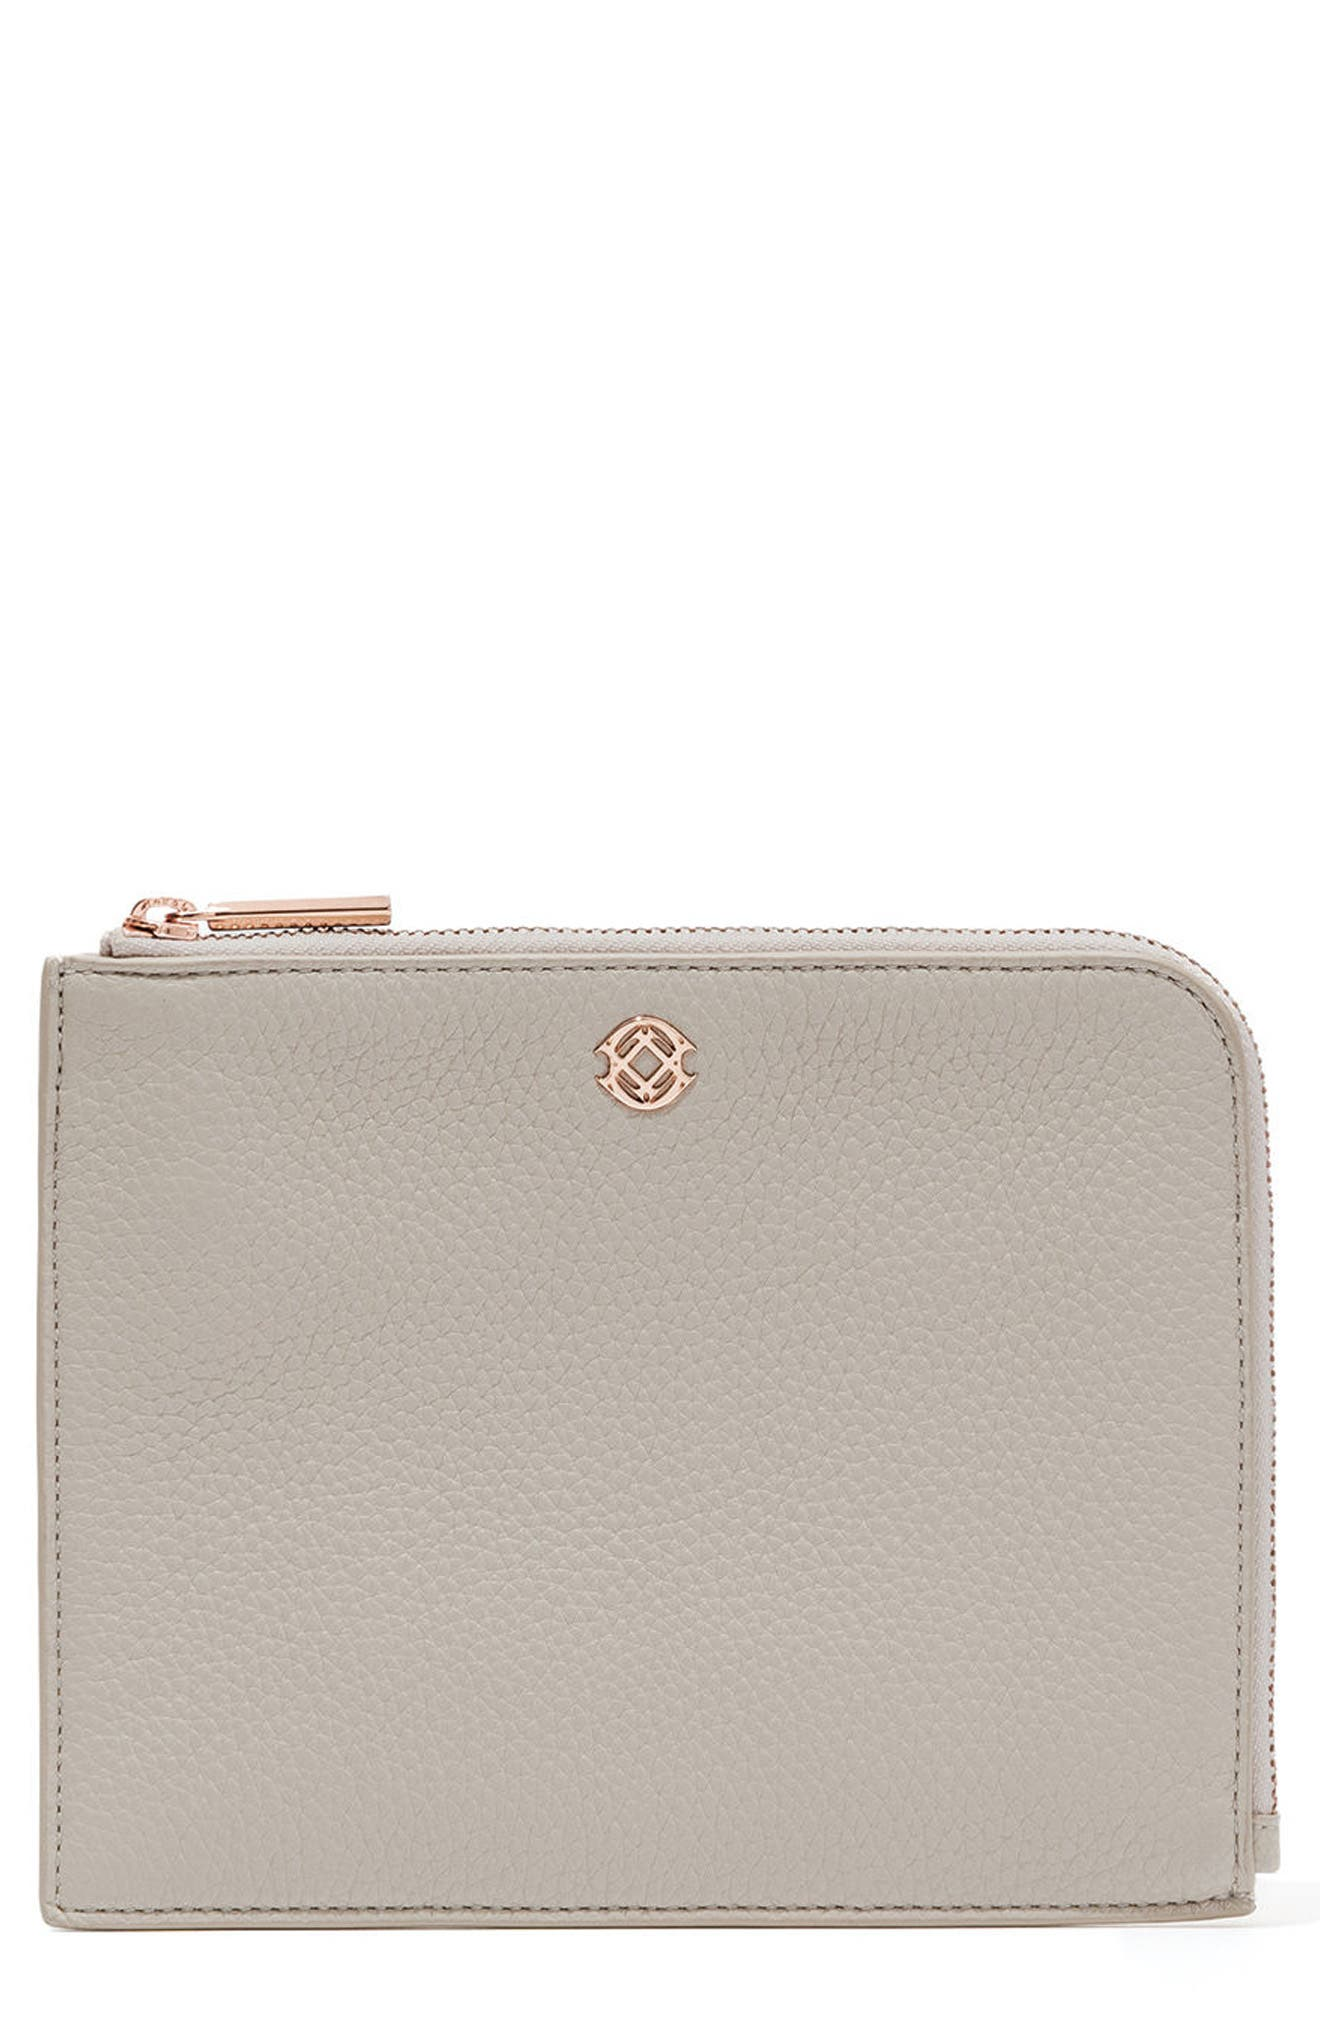 Small Elle Leather Clutch,                             Main thumbnail 7, color,